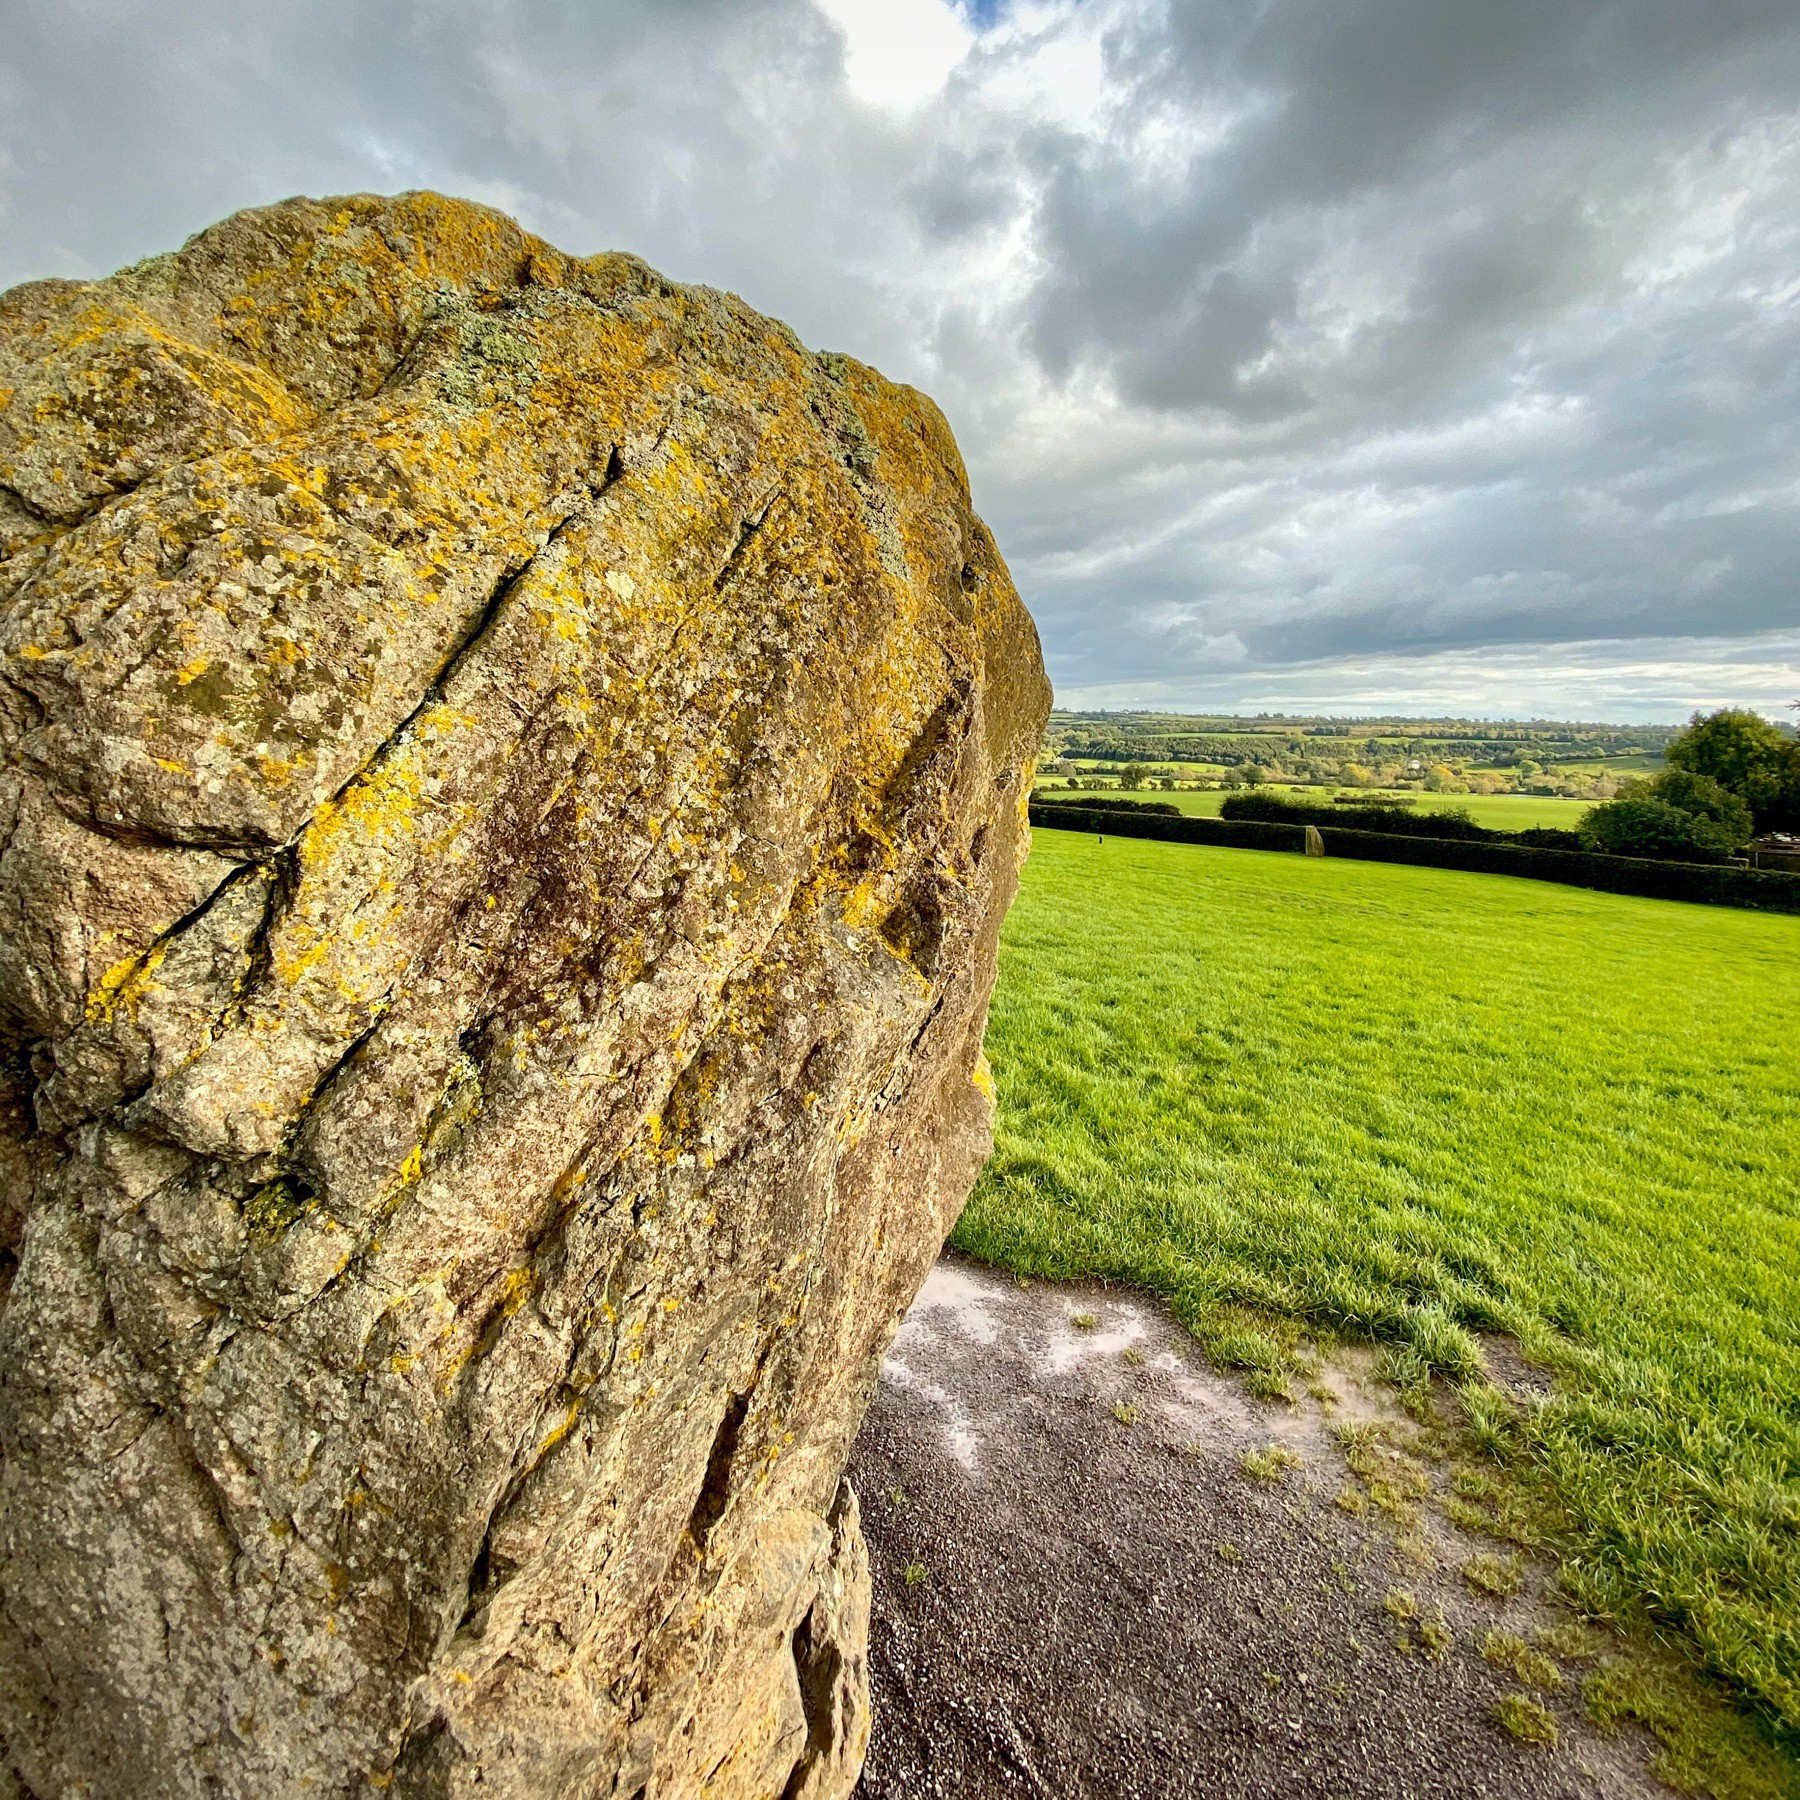 Large boulder in foreground, with green pasture and clouded sky.